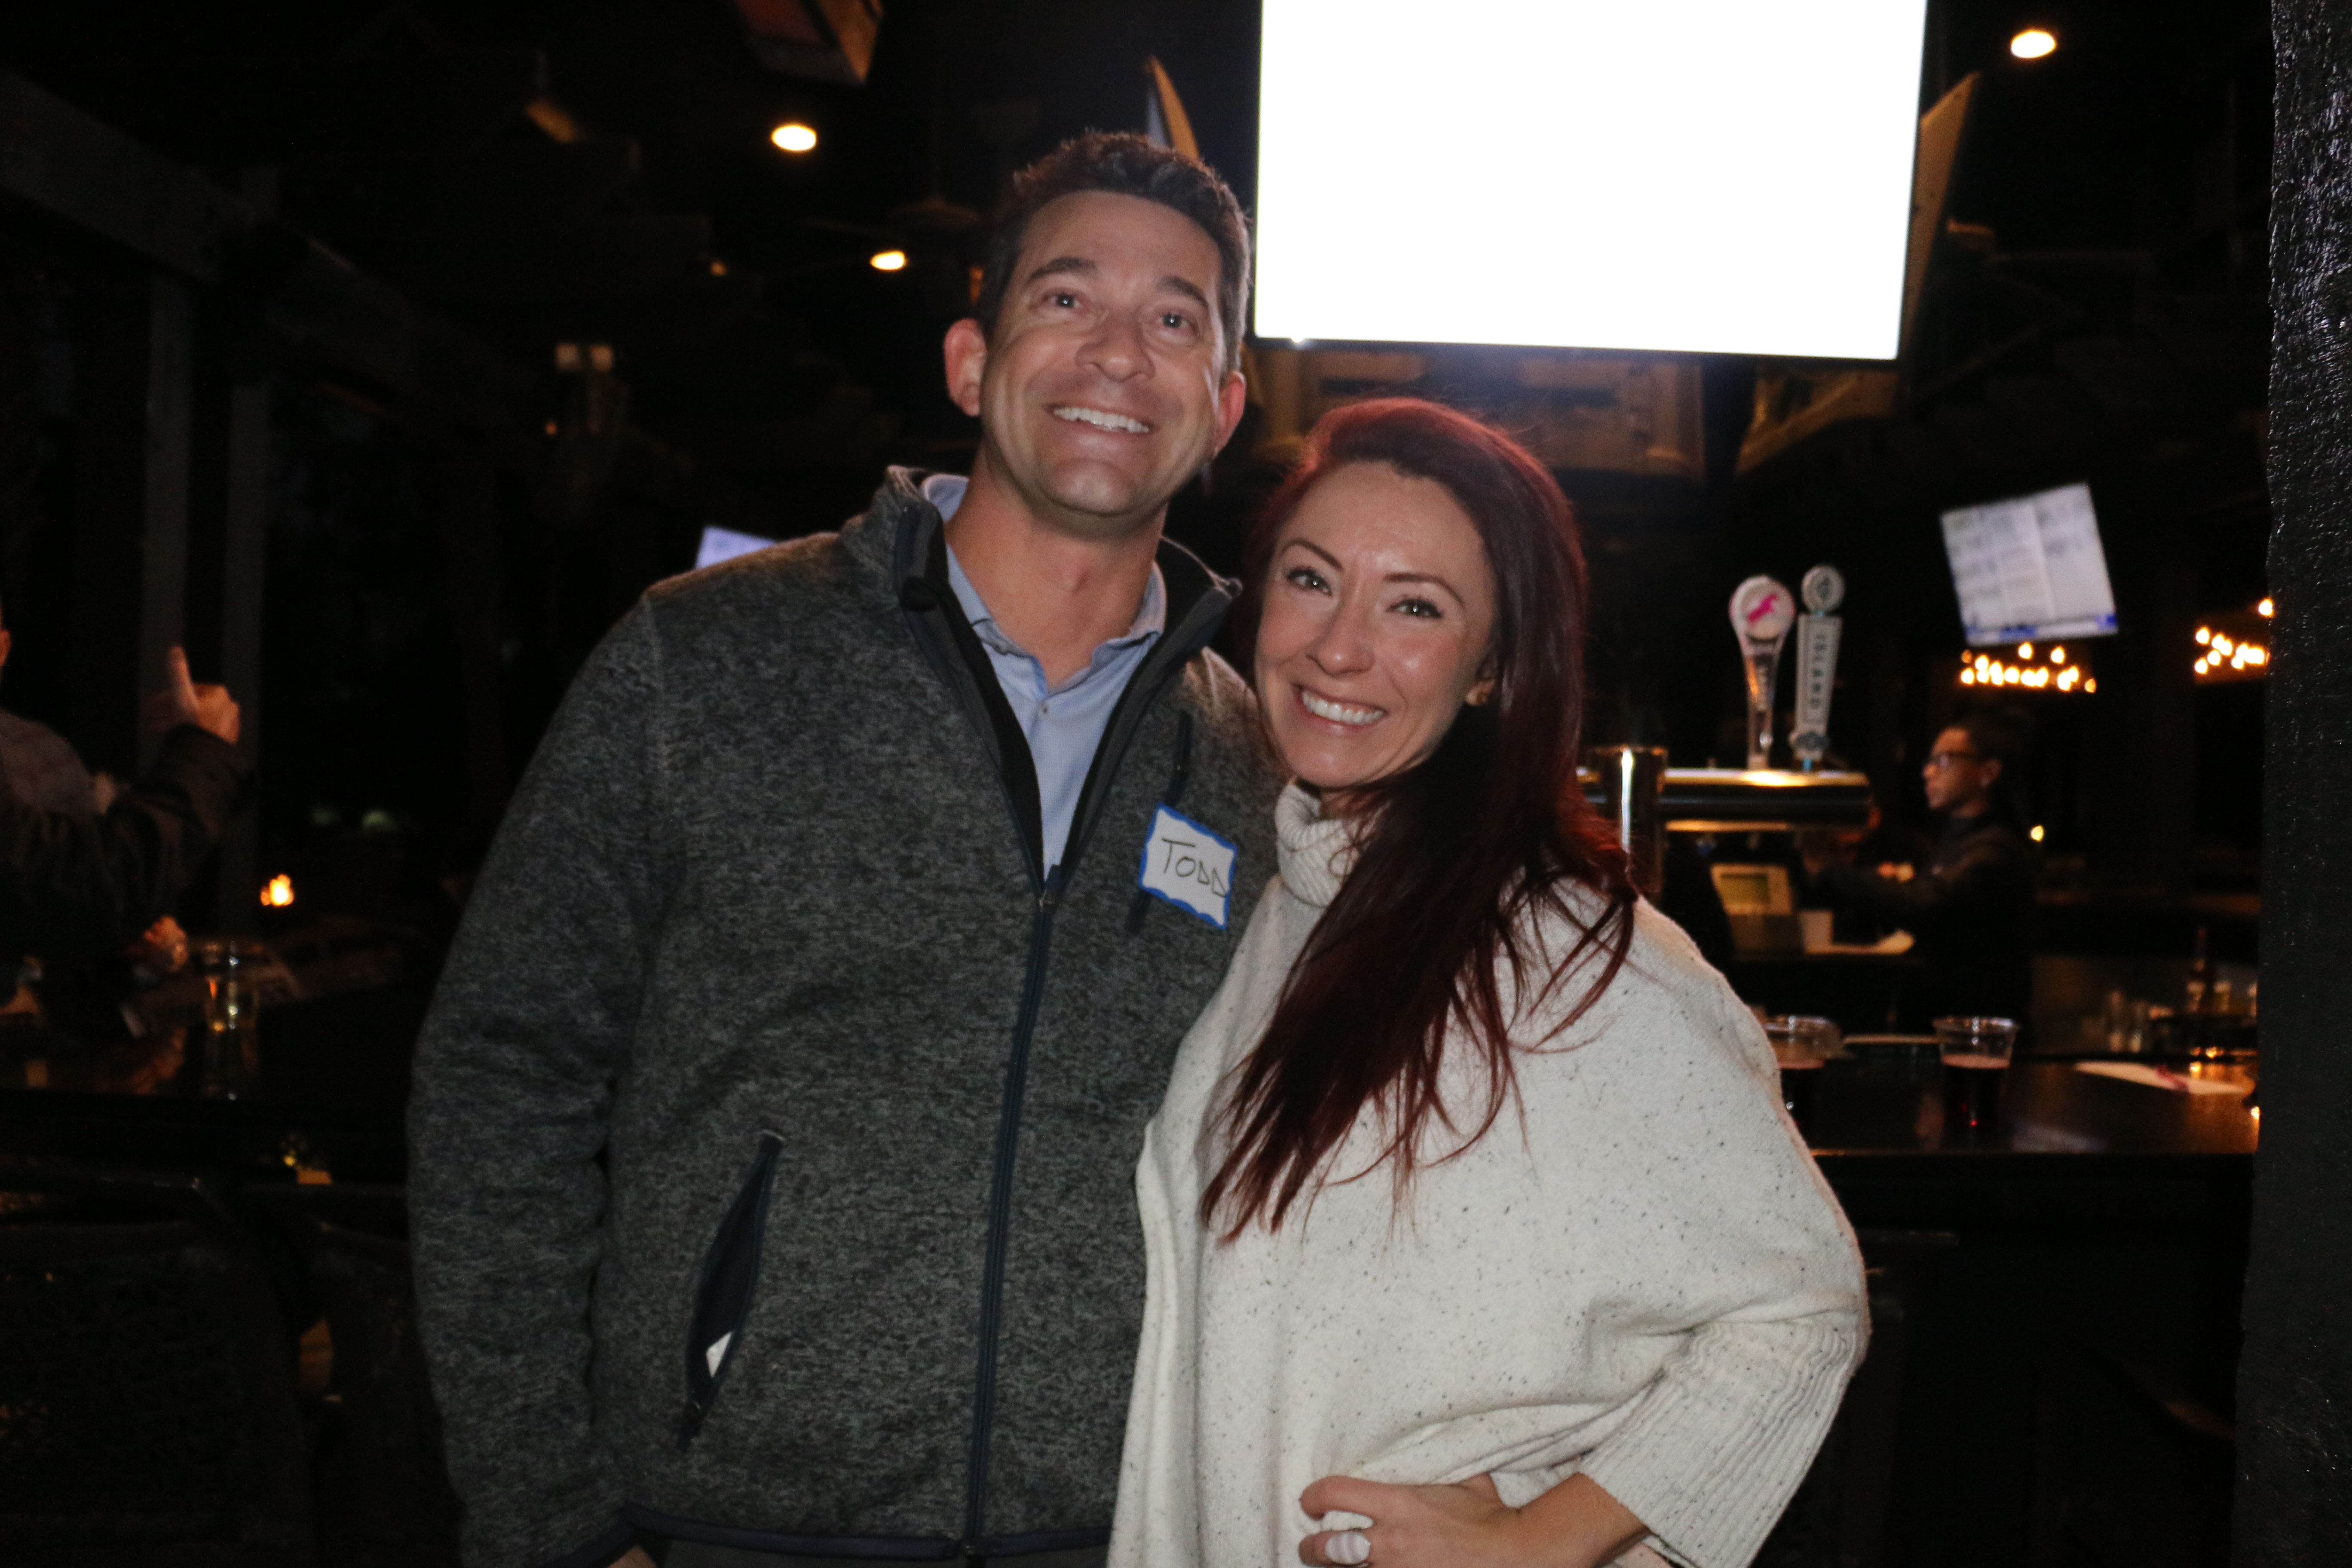 Benefitfocus business analyst Todd Vogelmann and pilot Sherri Ginger were among the many friends and associates who attended the oyster roast event held by DIBA and the local Rotary Club.